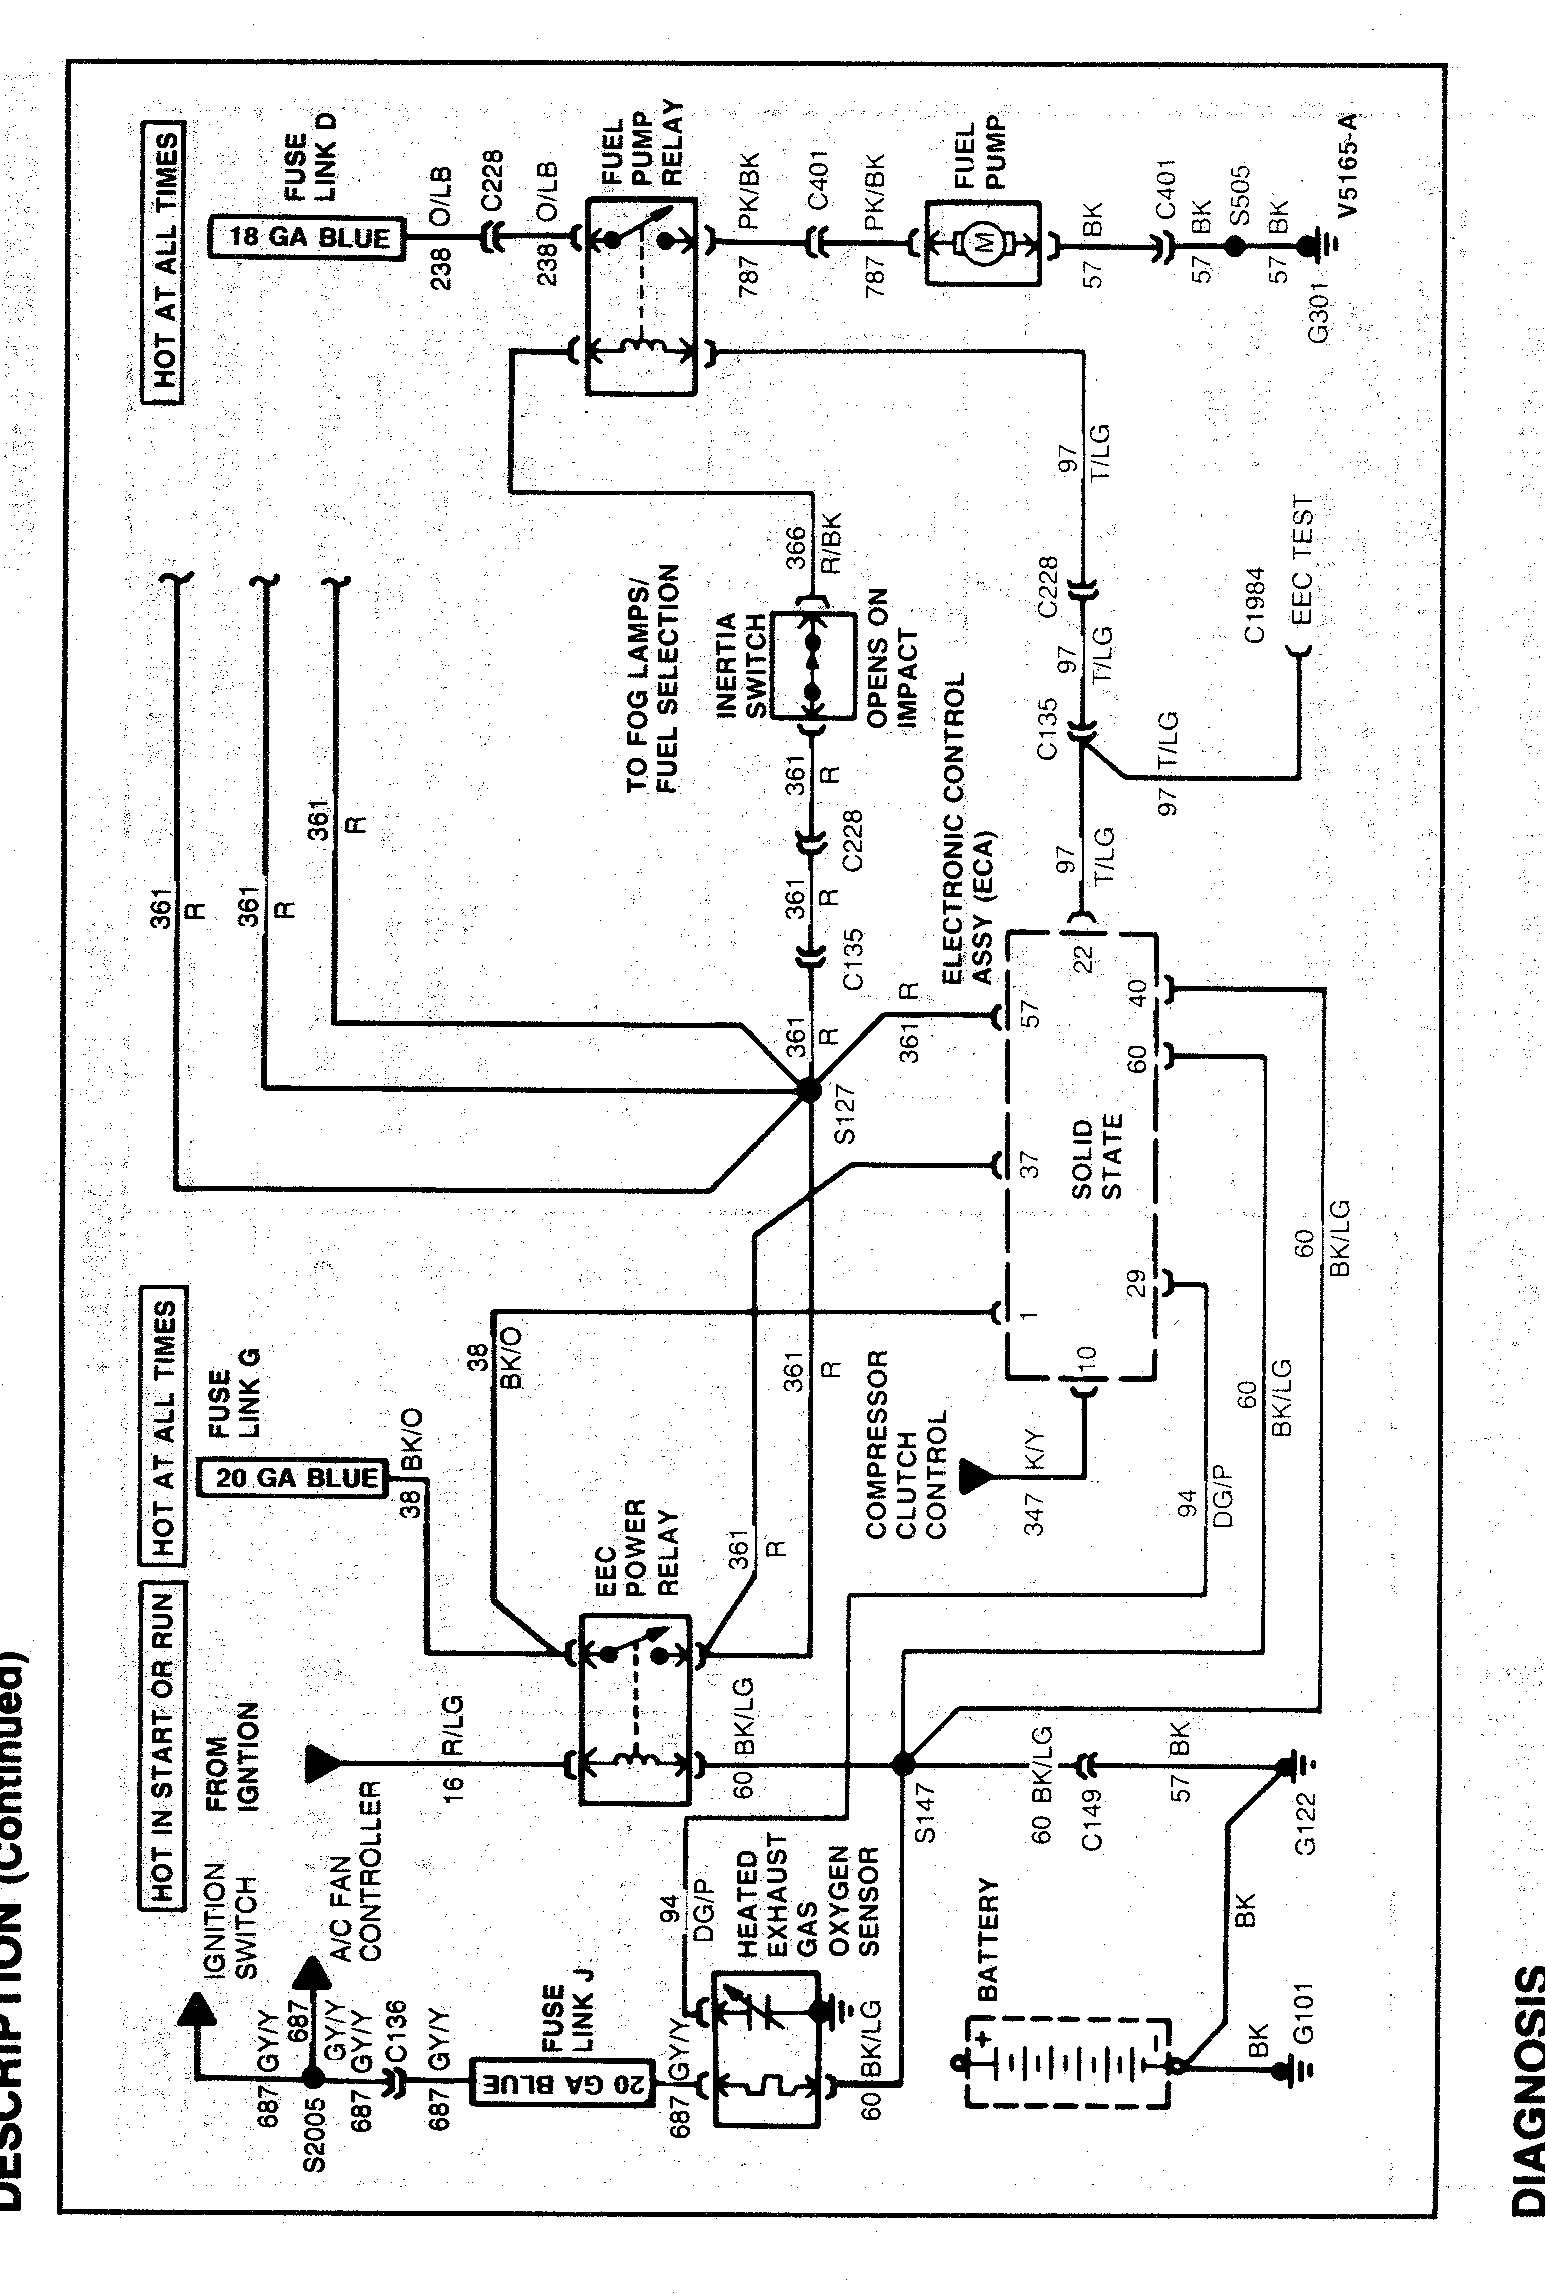 DIAGRAM] 01 Mustang 3 8 Fuel Injection Wiring Diagram FULL Version HD  Quality Wiring Diagram - MC14538BCPSCHEMATIC4606.CONTOROCK.ITCONTO ROCK